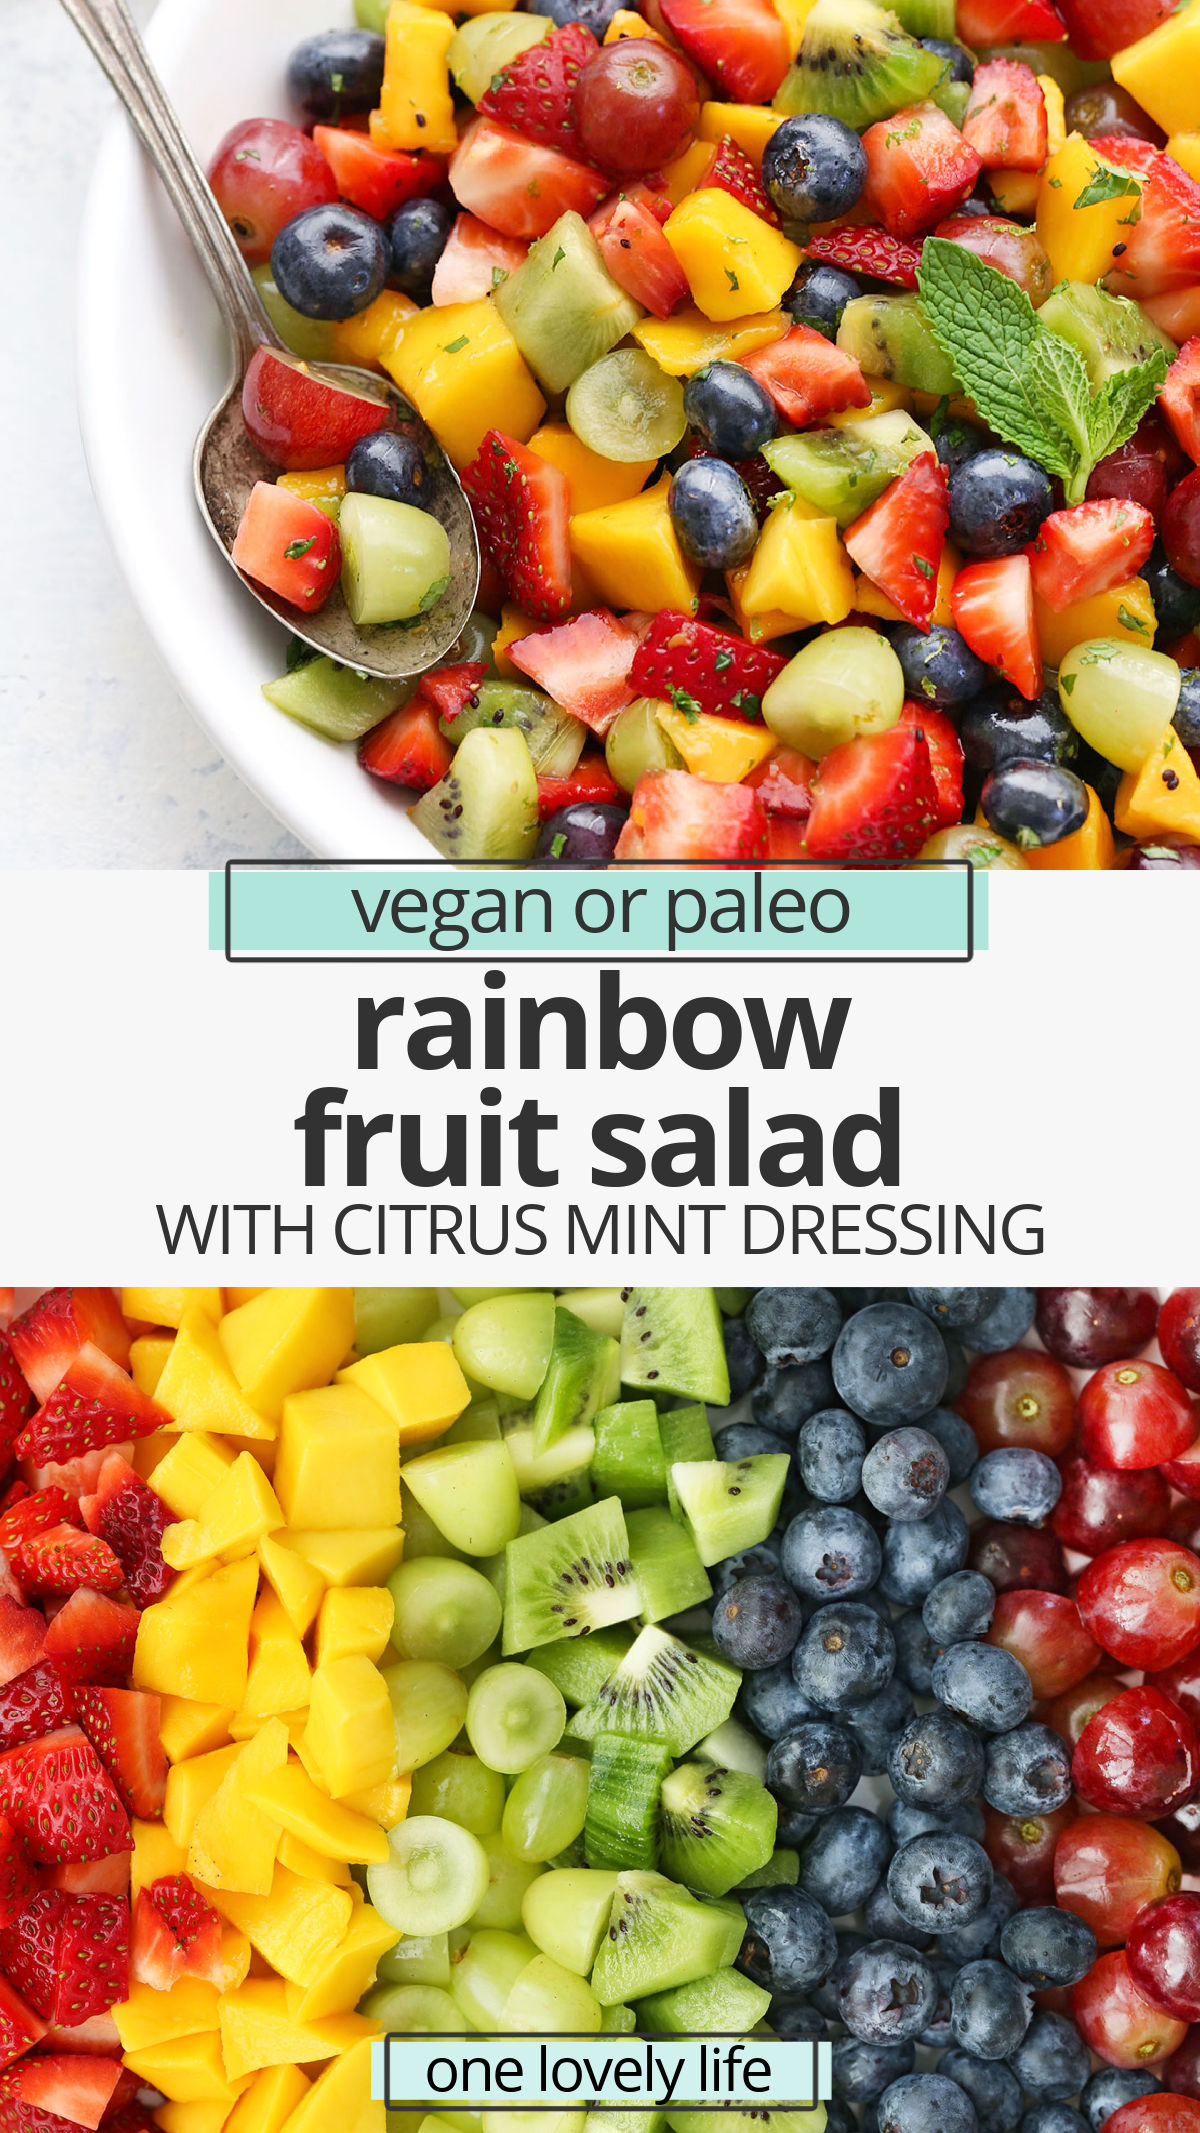 The Best Rainbow Fruit Salad with Citrus Mint Dressing - This rainbow fruit salad is always a favorite with kids and grown-ups. Perfect for picnics, potlucks, brunches, barbecues, and more! (Gluten free, paleo & vegan friendly) // rainbow fruit salad // honey mint dressing // citrus mint dressing recipe // fruit salad with dressing // the best fruit salad recipe #fruitsalad #rainbow #rainbowfood #rainbowparty #rainbowfruitsalad #citrus #mint #brunchrecipes